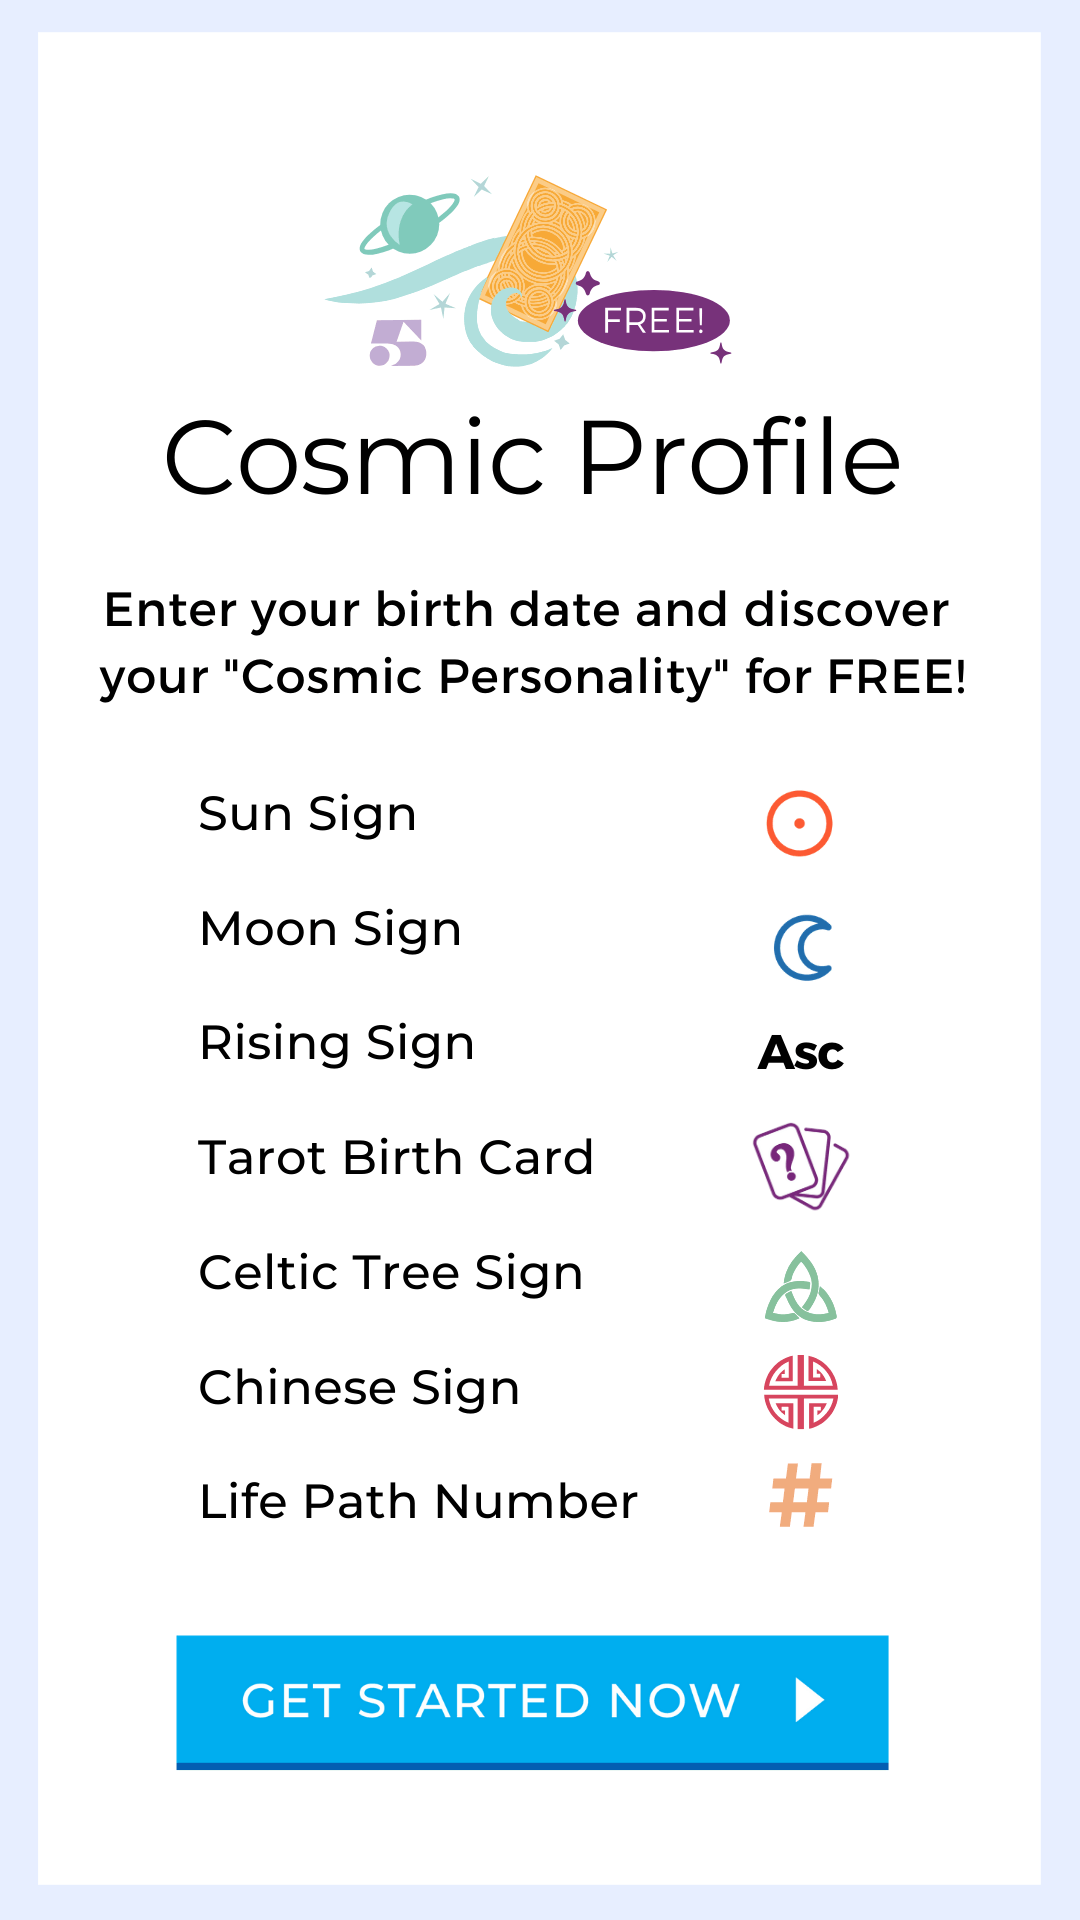 Free Cosmic Profile from Tarot.com